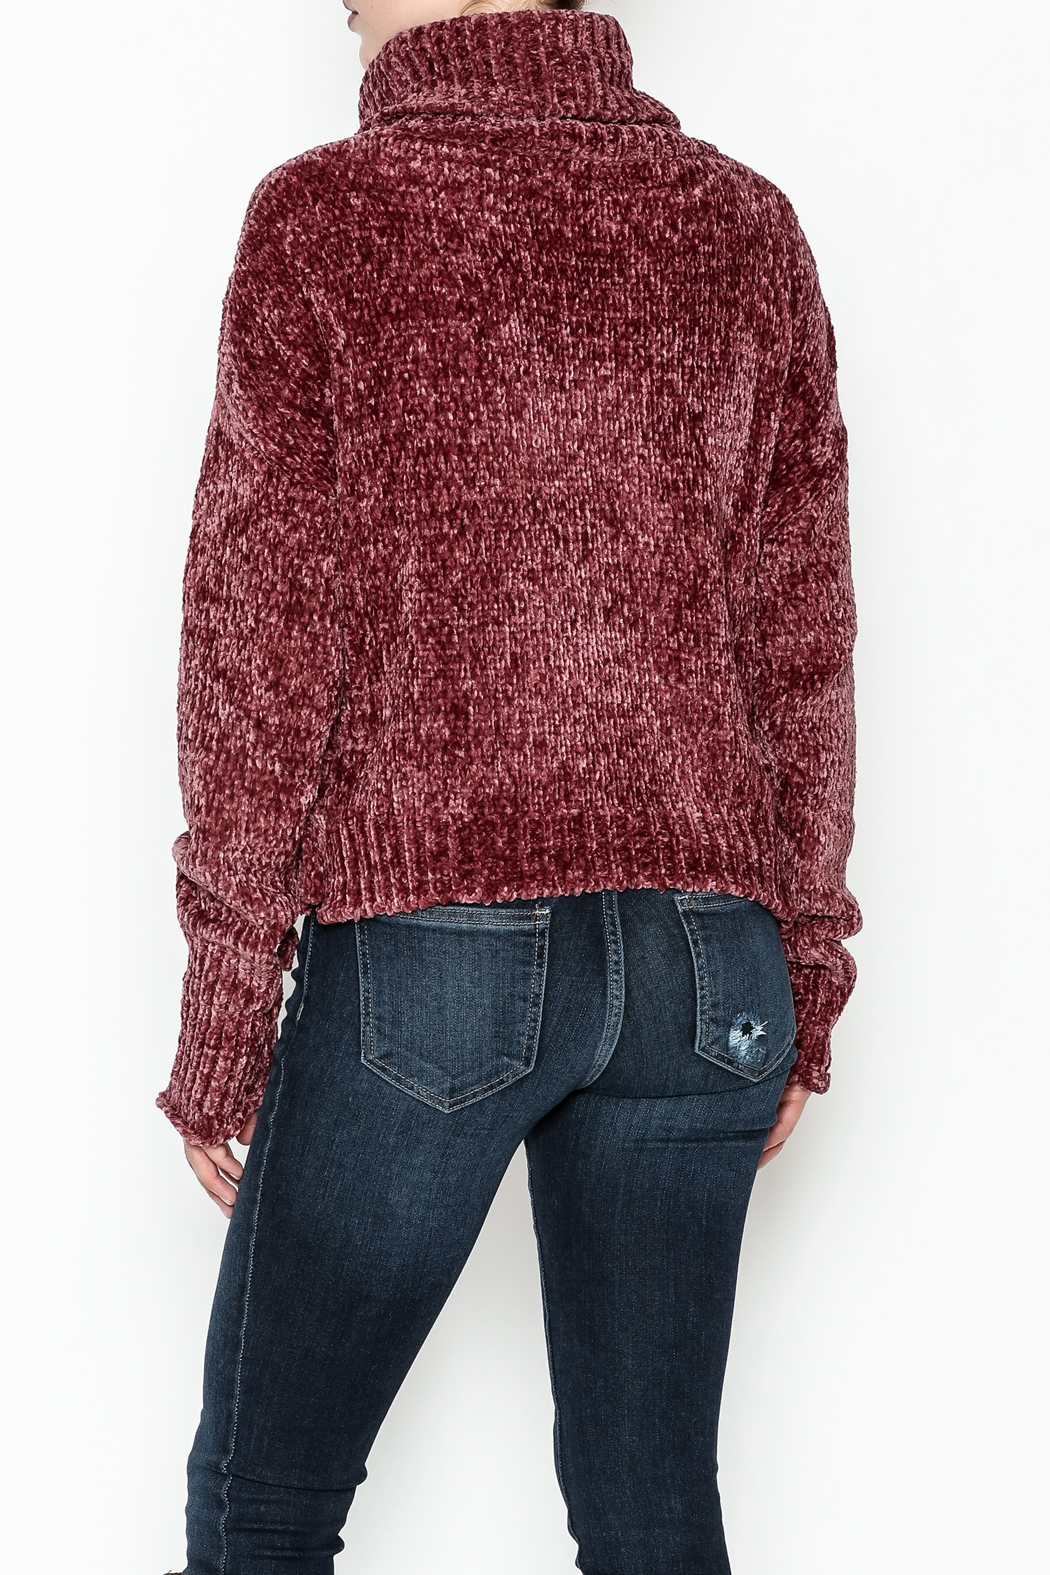 Emory Park Chenille Sweater - Back Cropped Image